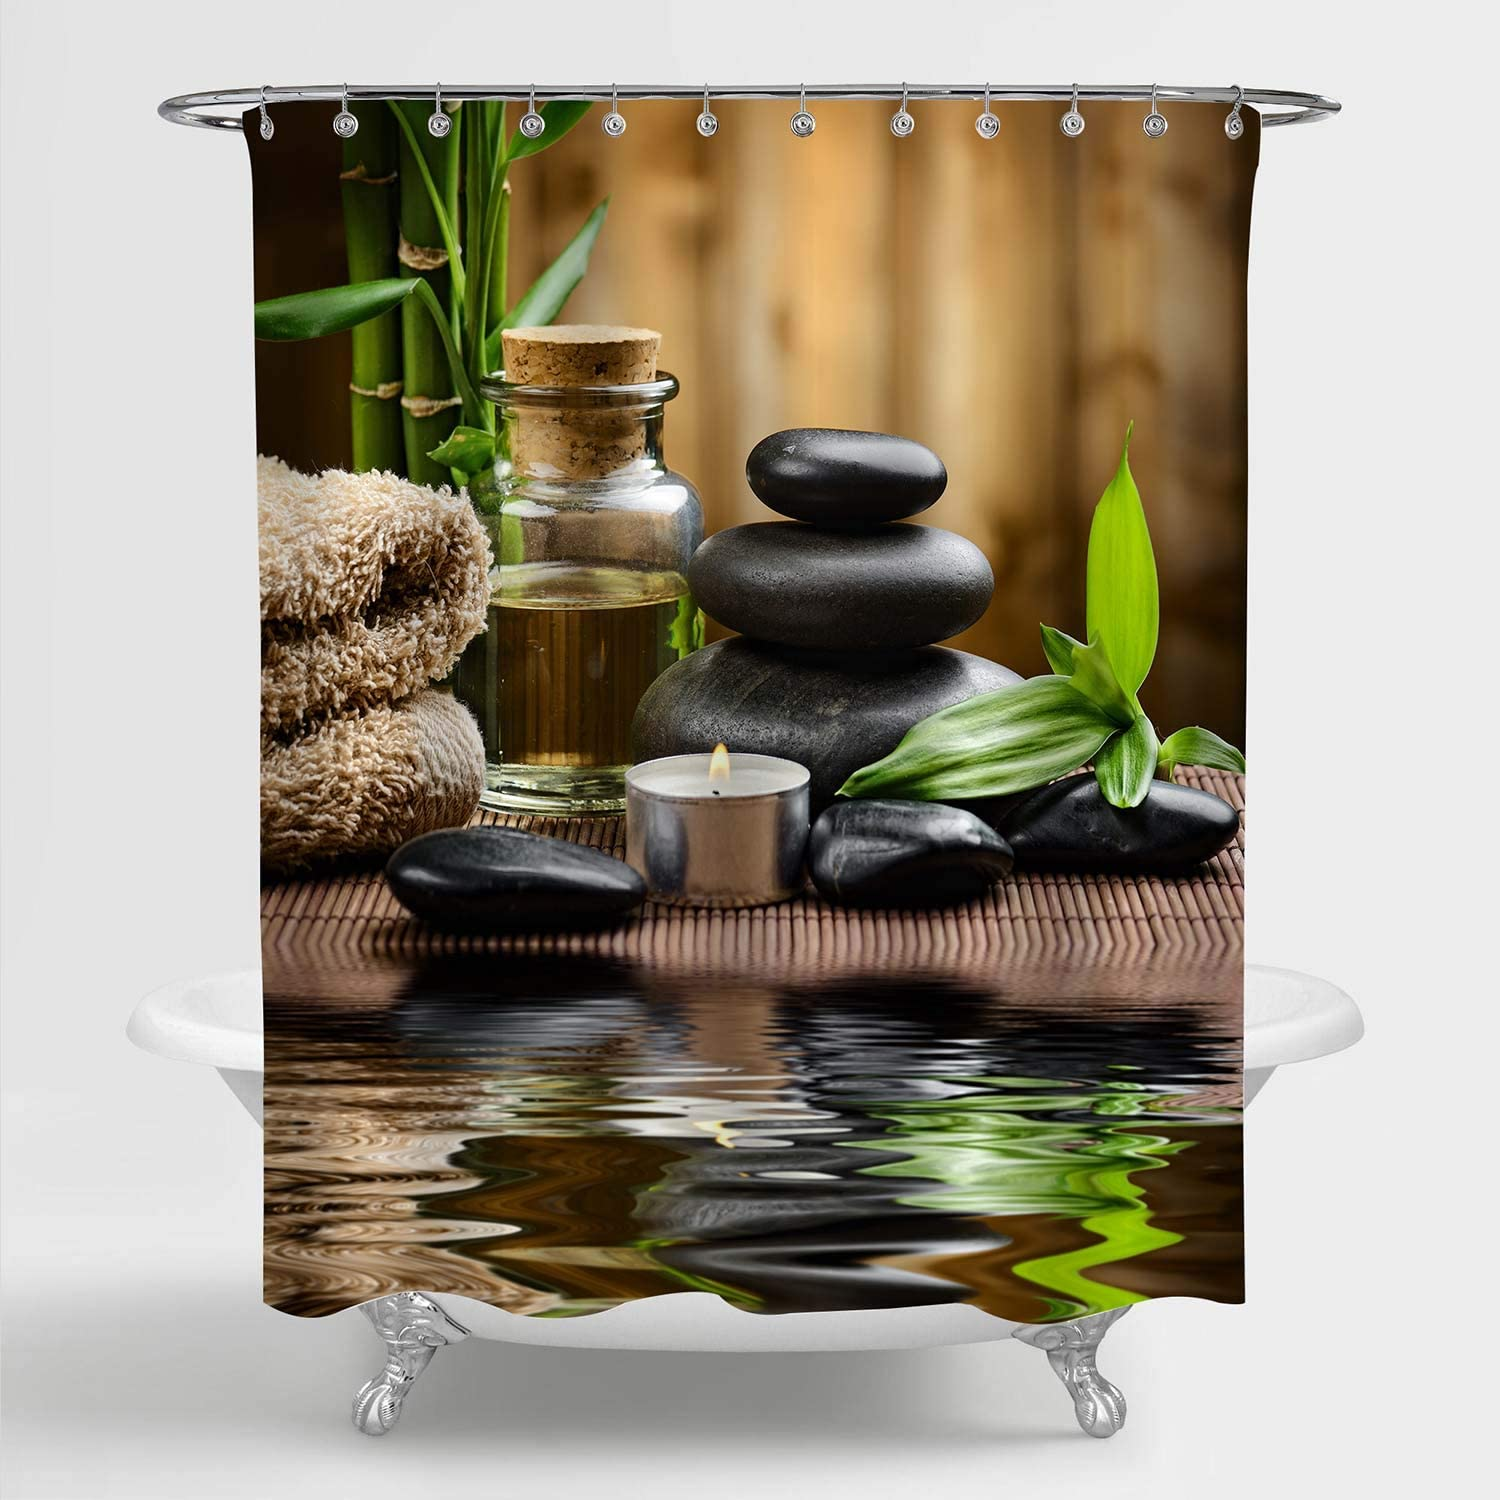 "MitoVilla Zen Spa Shower Curtain for Women, Zen Basalt Stones and Spa Oil on The Wood Near a Pond Printing Bathroom Accessories for Japanese Garden Theme Home Decor, Brown, 72"" W x 72"" L Standard"